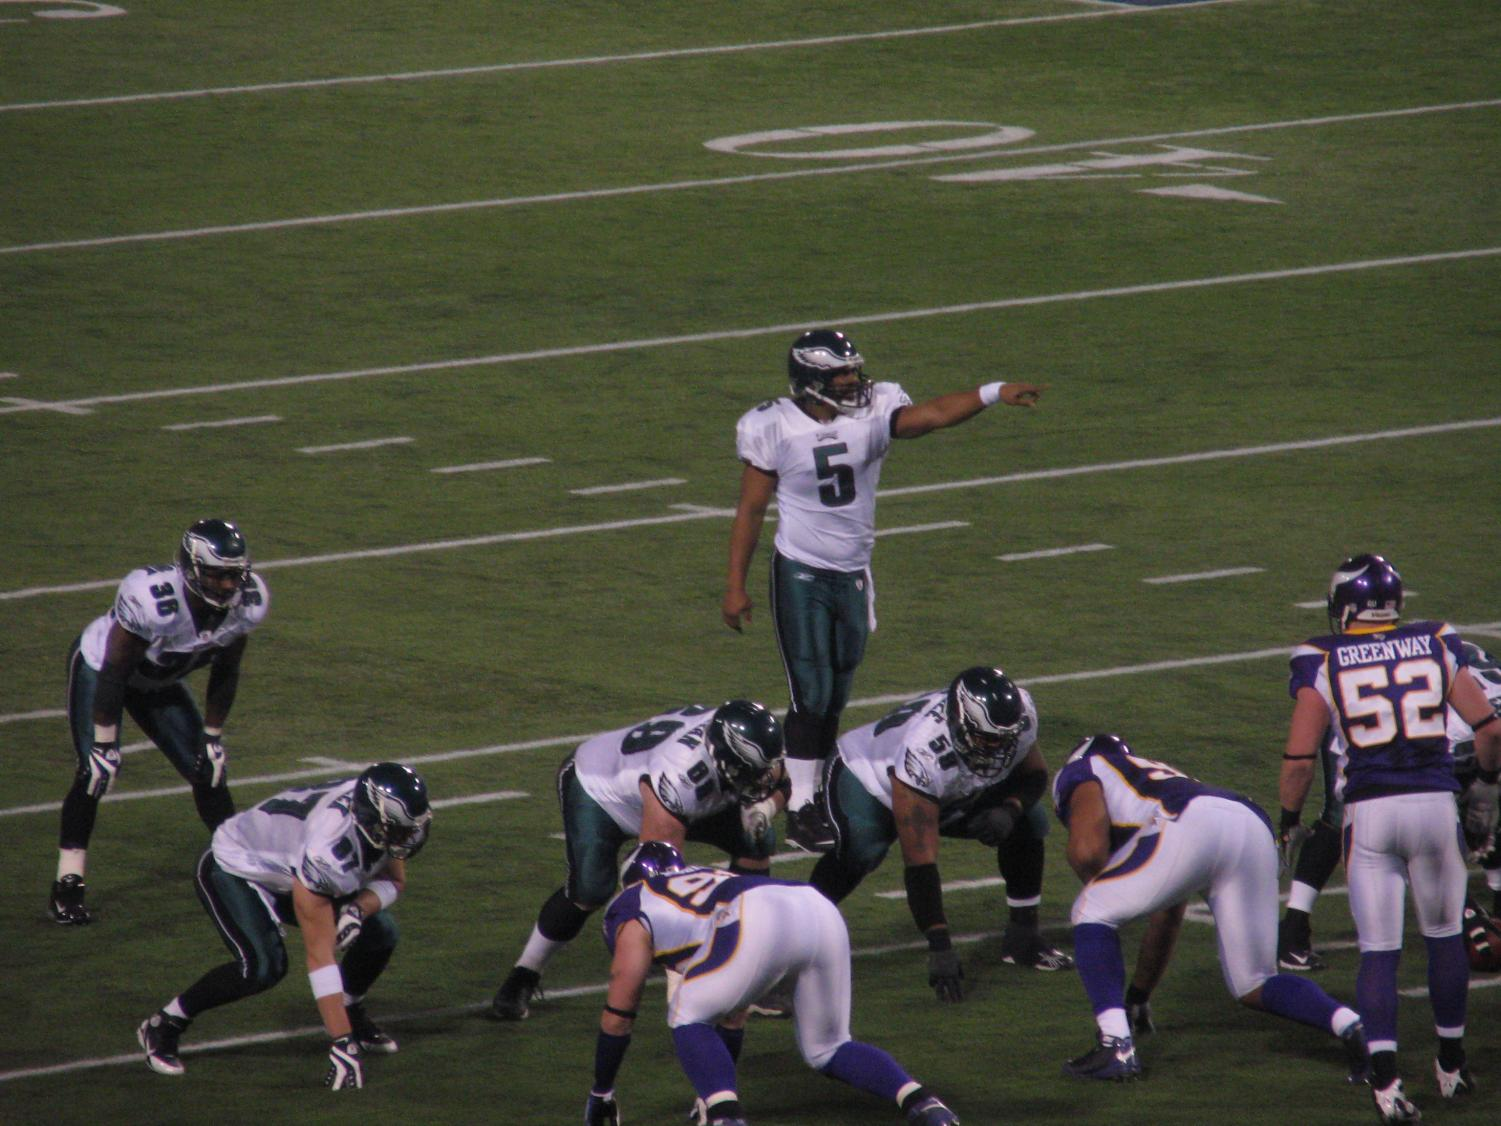 Seen here is Eagles legend Donovan McNabb (#5) calling an audible for the offense at the line of scrimmage.